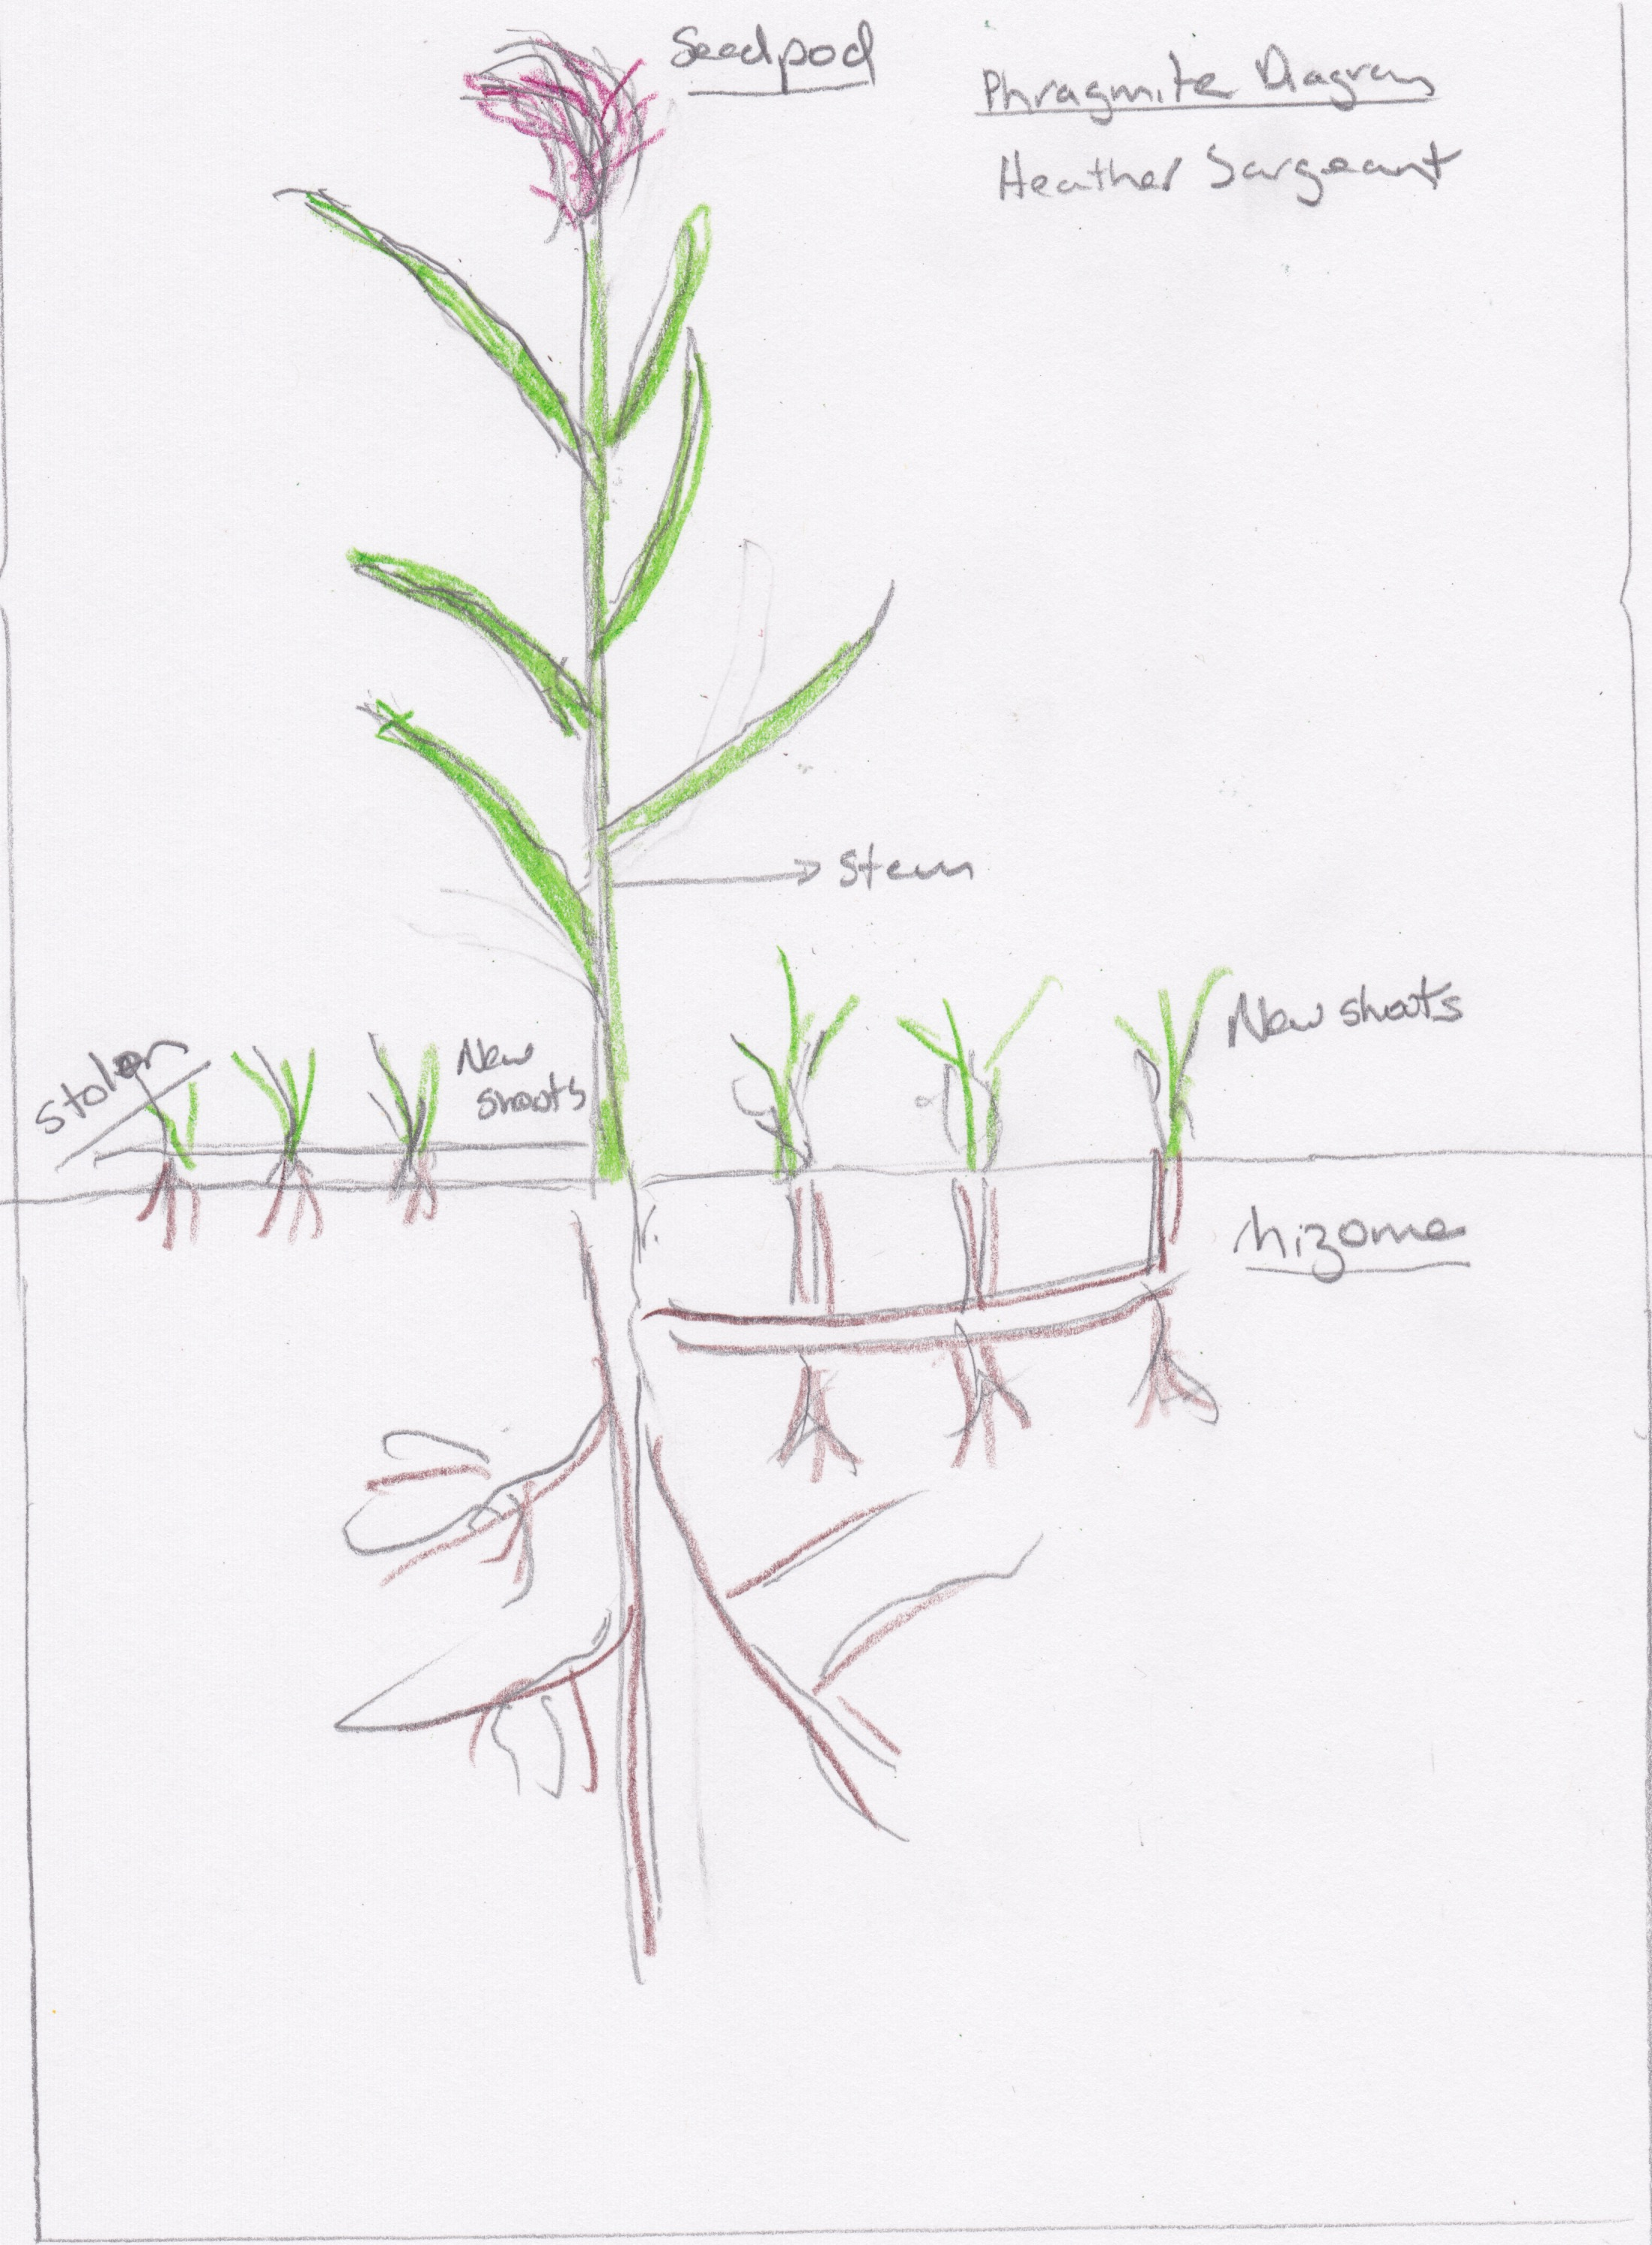 horsetail plant diagram software architecture visio 5 ways the invasion of non native phragmites plants will cost you